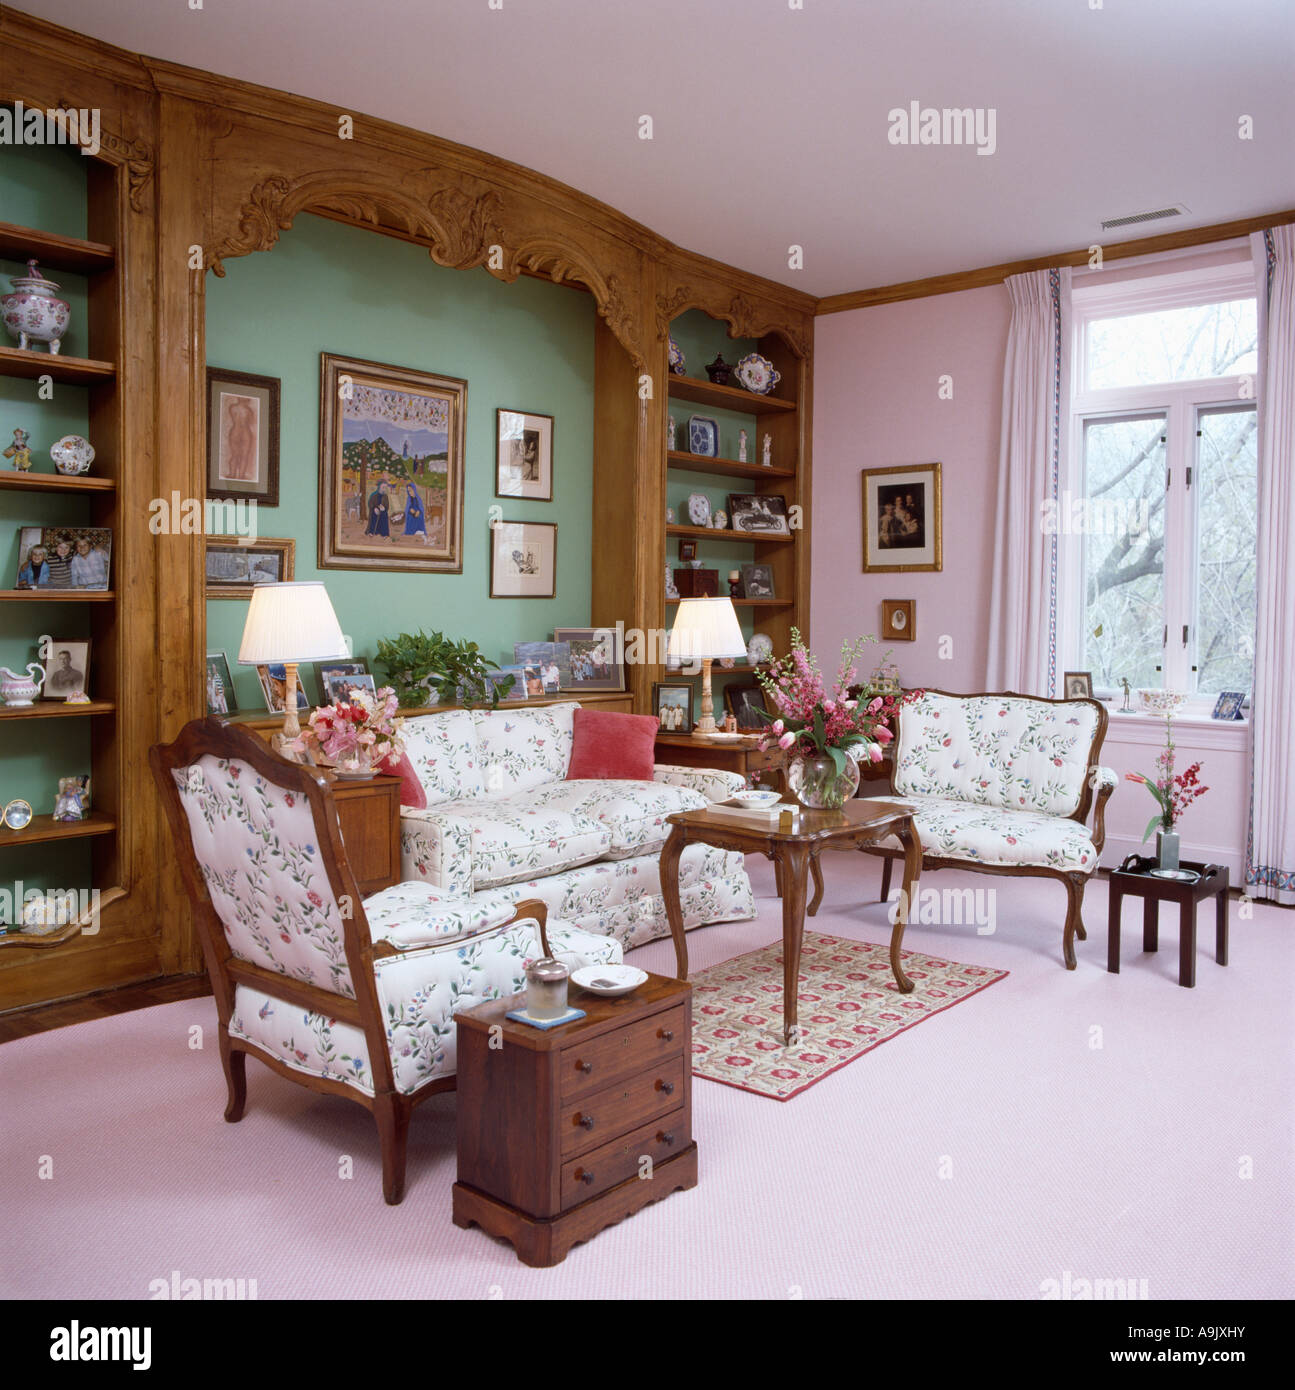 traditional furniture pink sofa stock photos & traditional